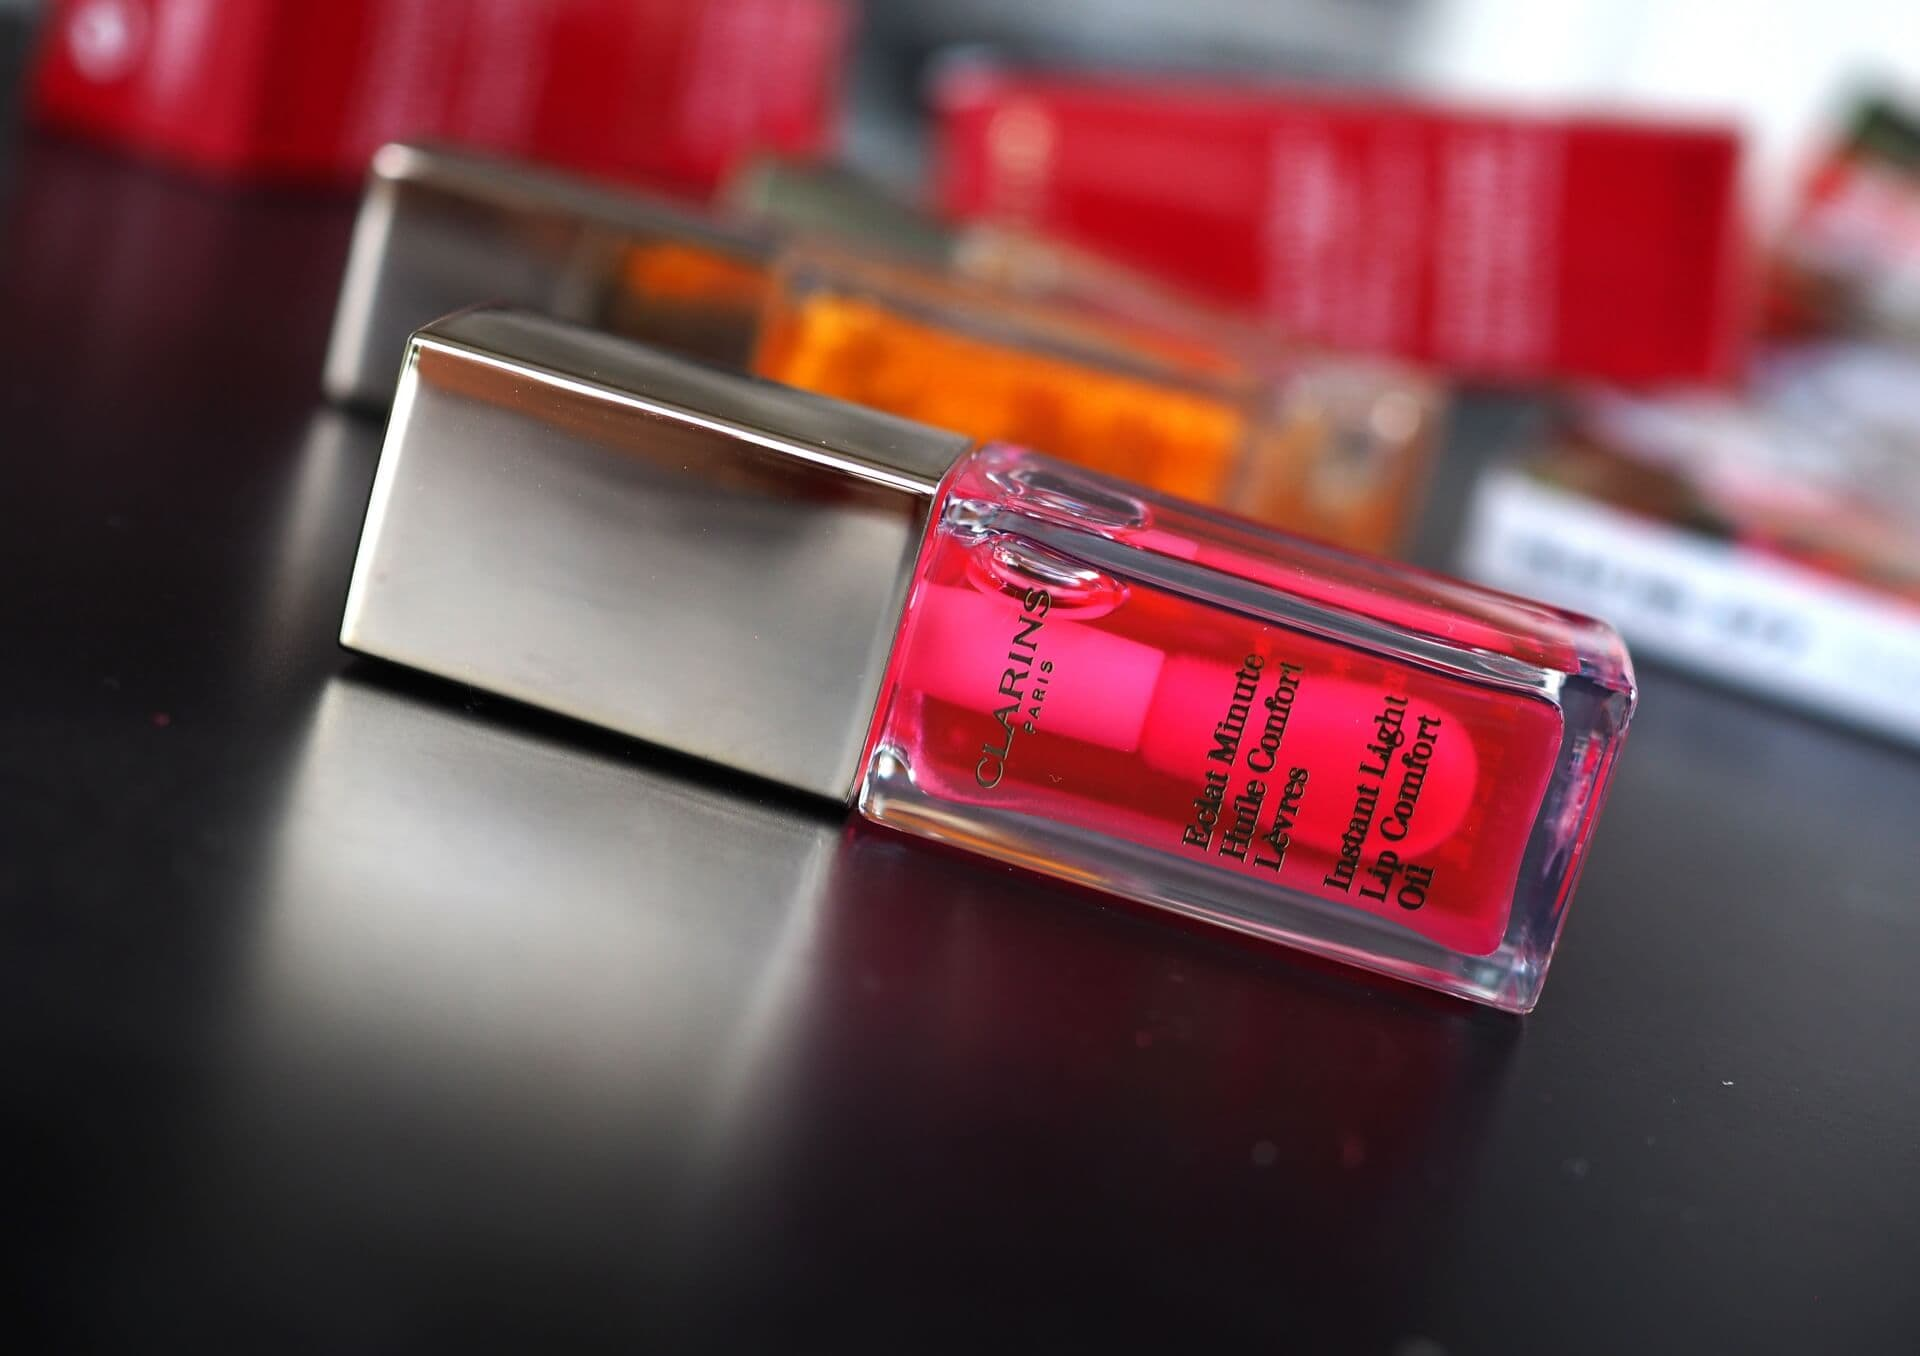 CLARINS CANDY LIP COMFORT OIL